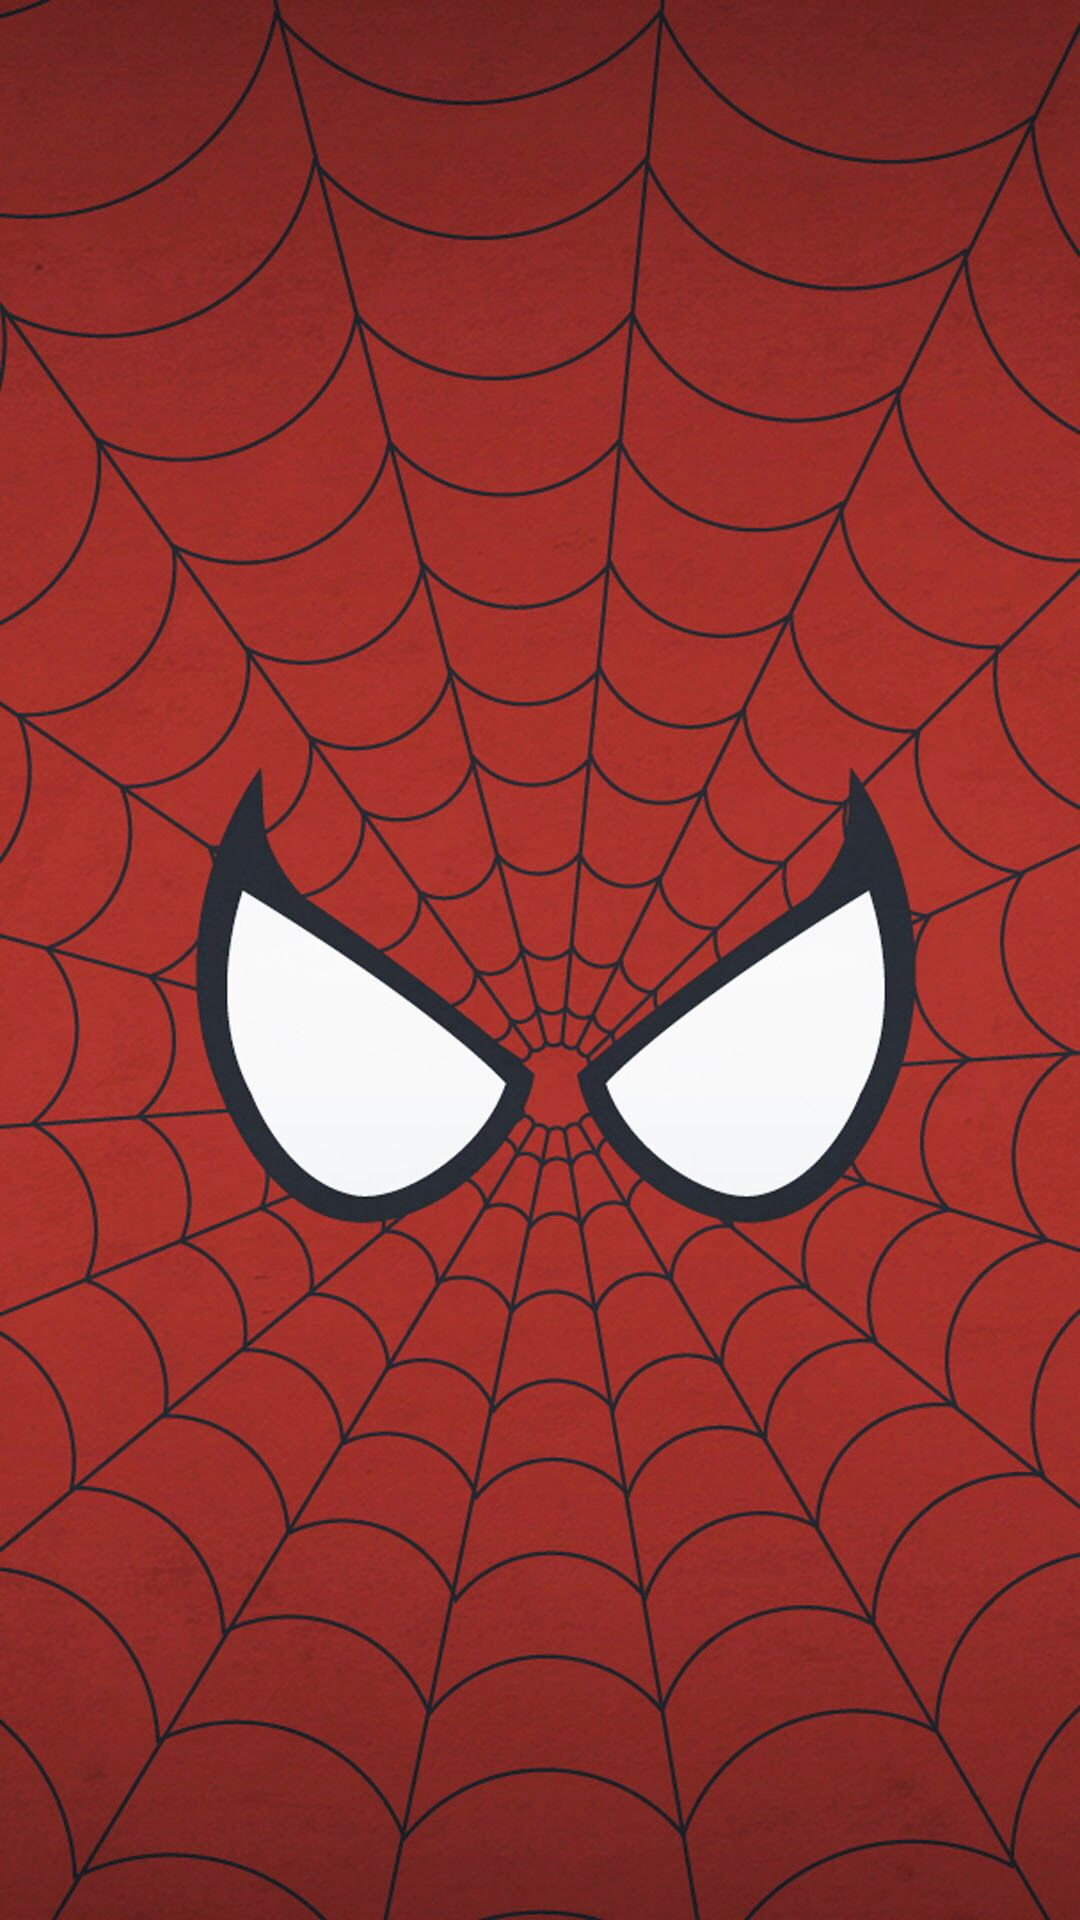 Spider Man Tap To See More Of The Amazing Spider Man Wallpapers